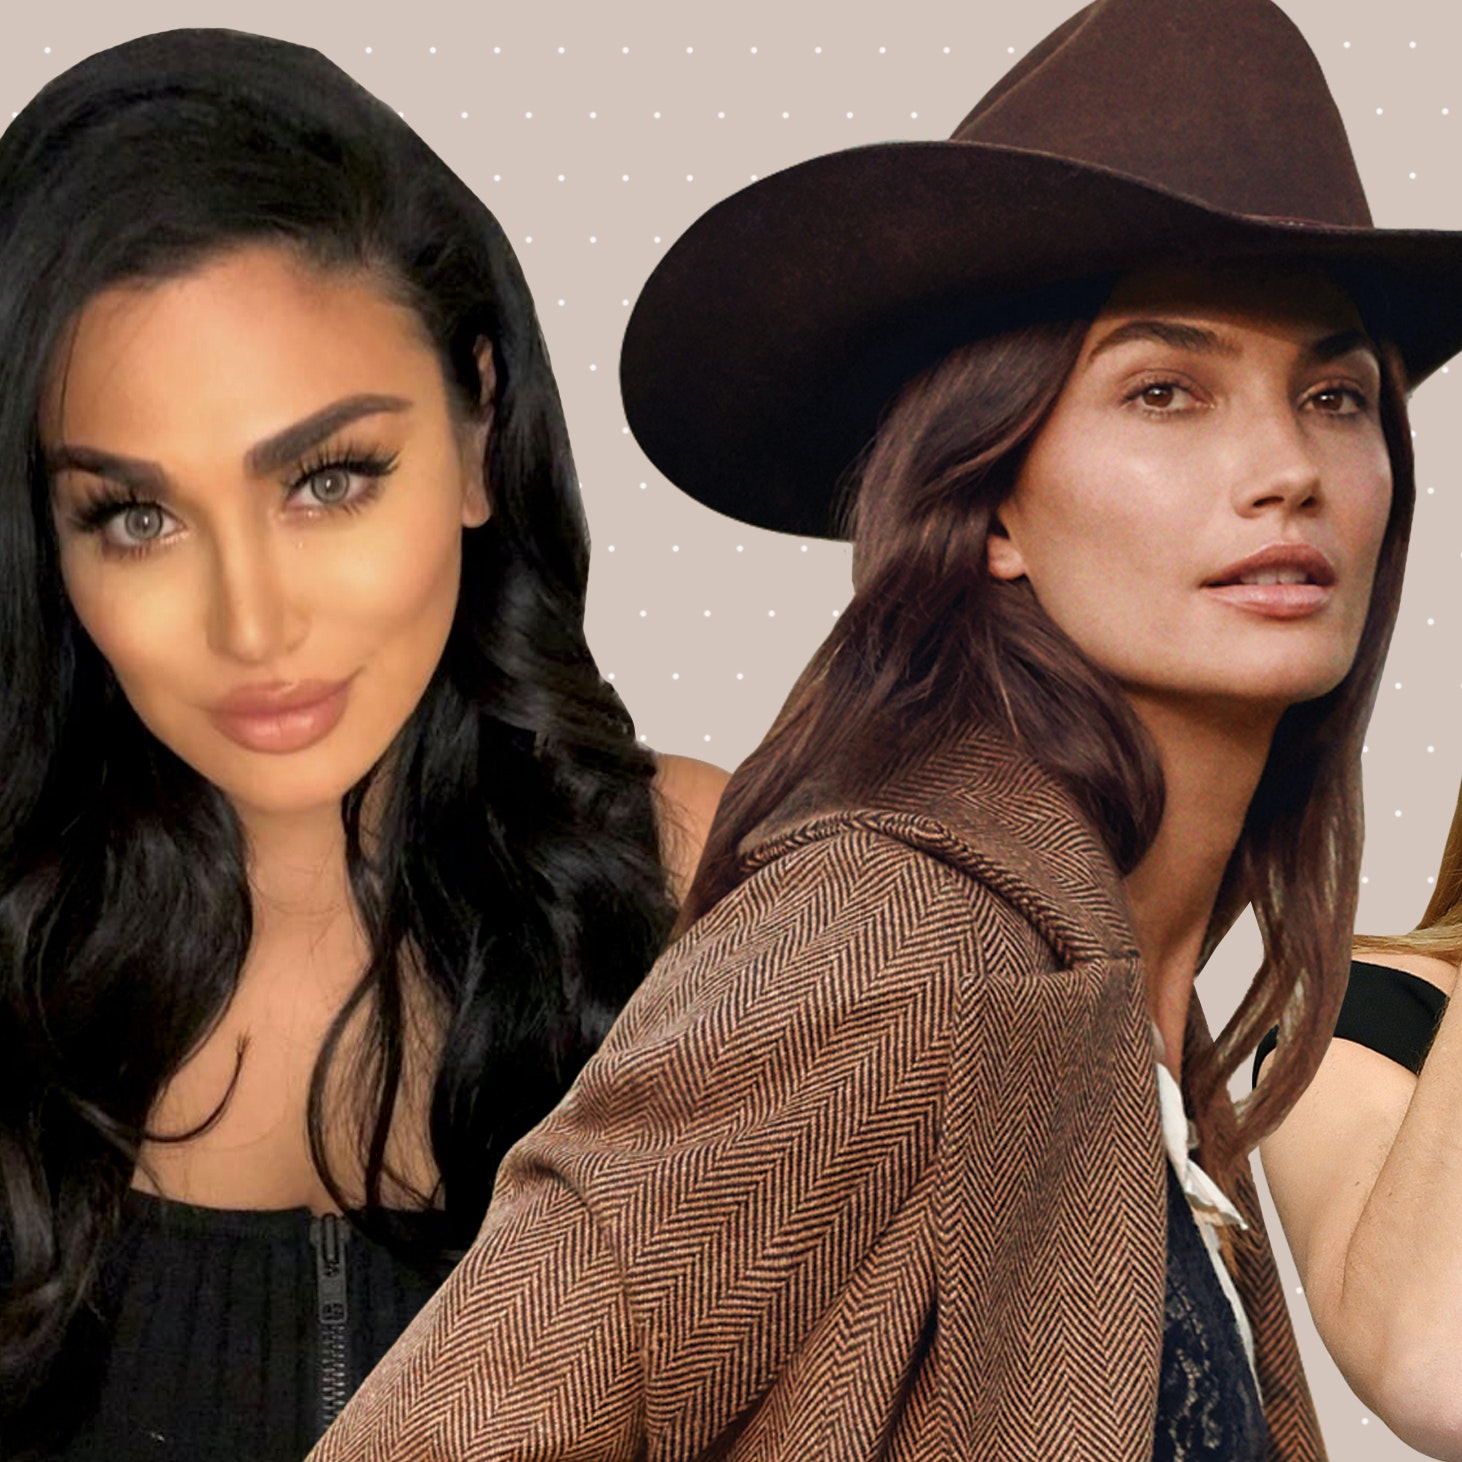 Huda Kattan, Lily Aldridge, & More Beauty Insiders Share Their At-Home Self-Care Tips